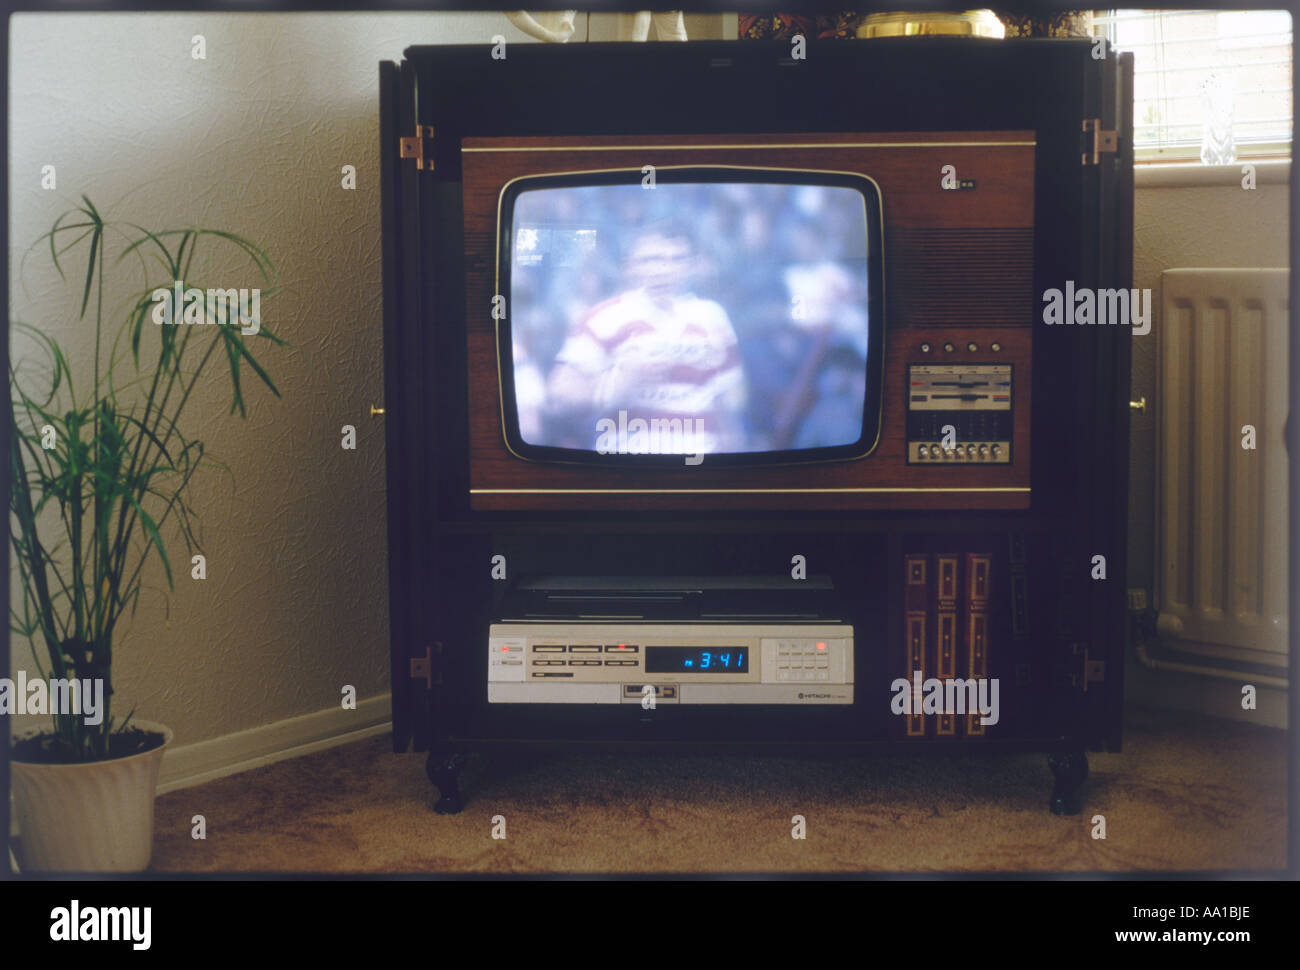 Vitrines Et Television - Colour Tv Set Stock Photos Colour Tv Set Stock Images Alamy[mjhdah]https://archinect.imgix.net/uploads/ob/obrxru1p66131wmk.jpg?auto=compress%2Cformat